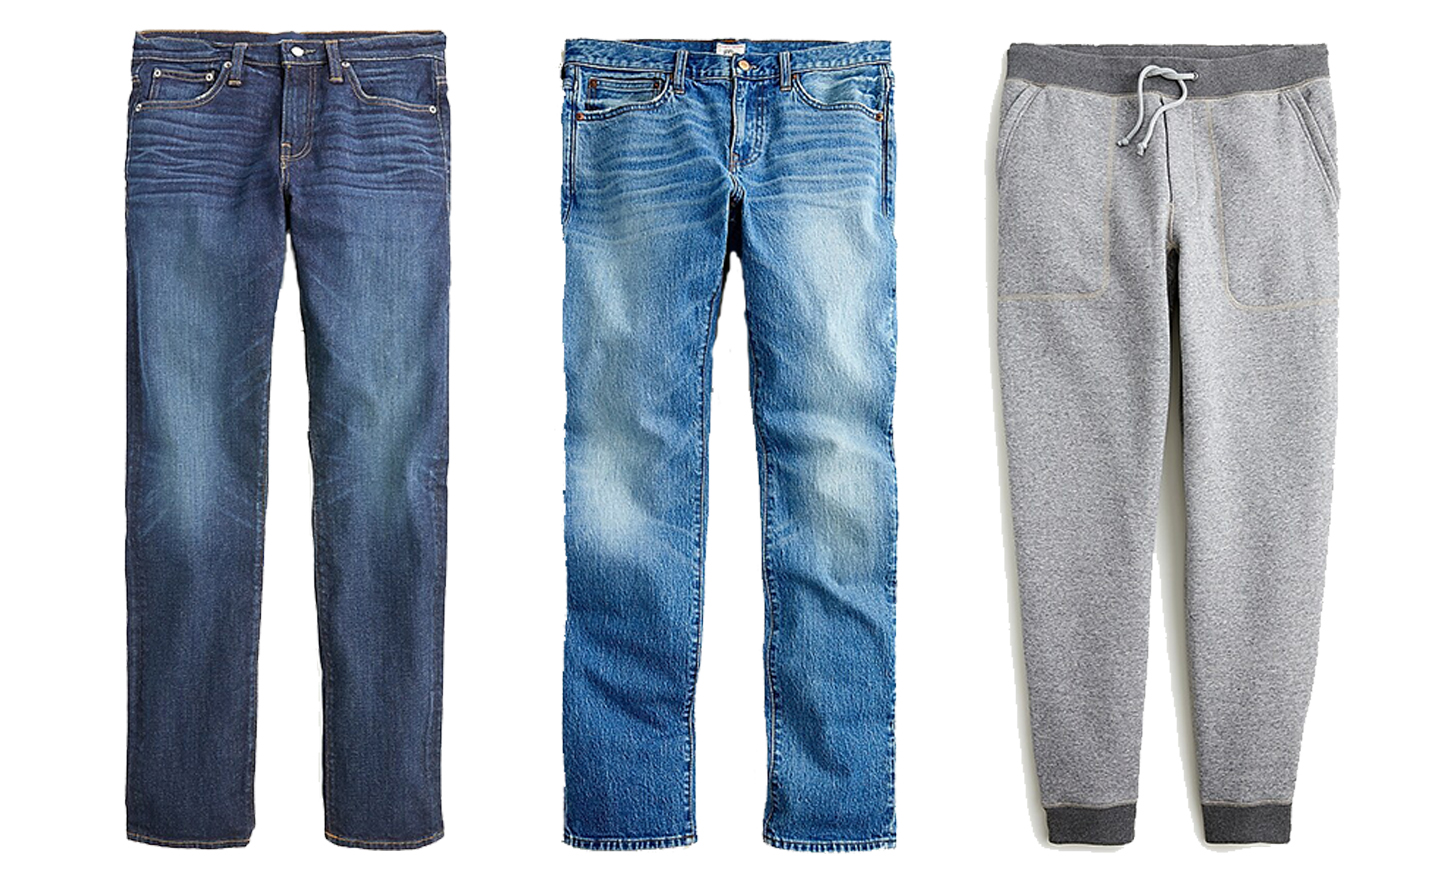 Casual Pants: Dark Wash Jeans / Light Wash Jeans / Joggers